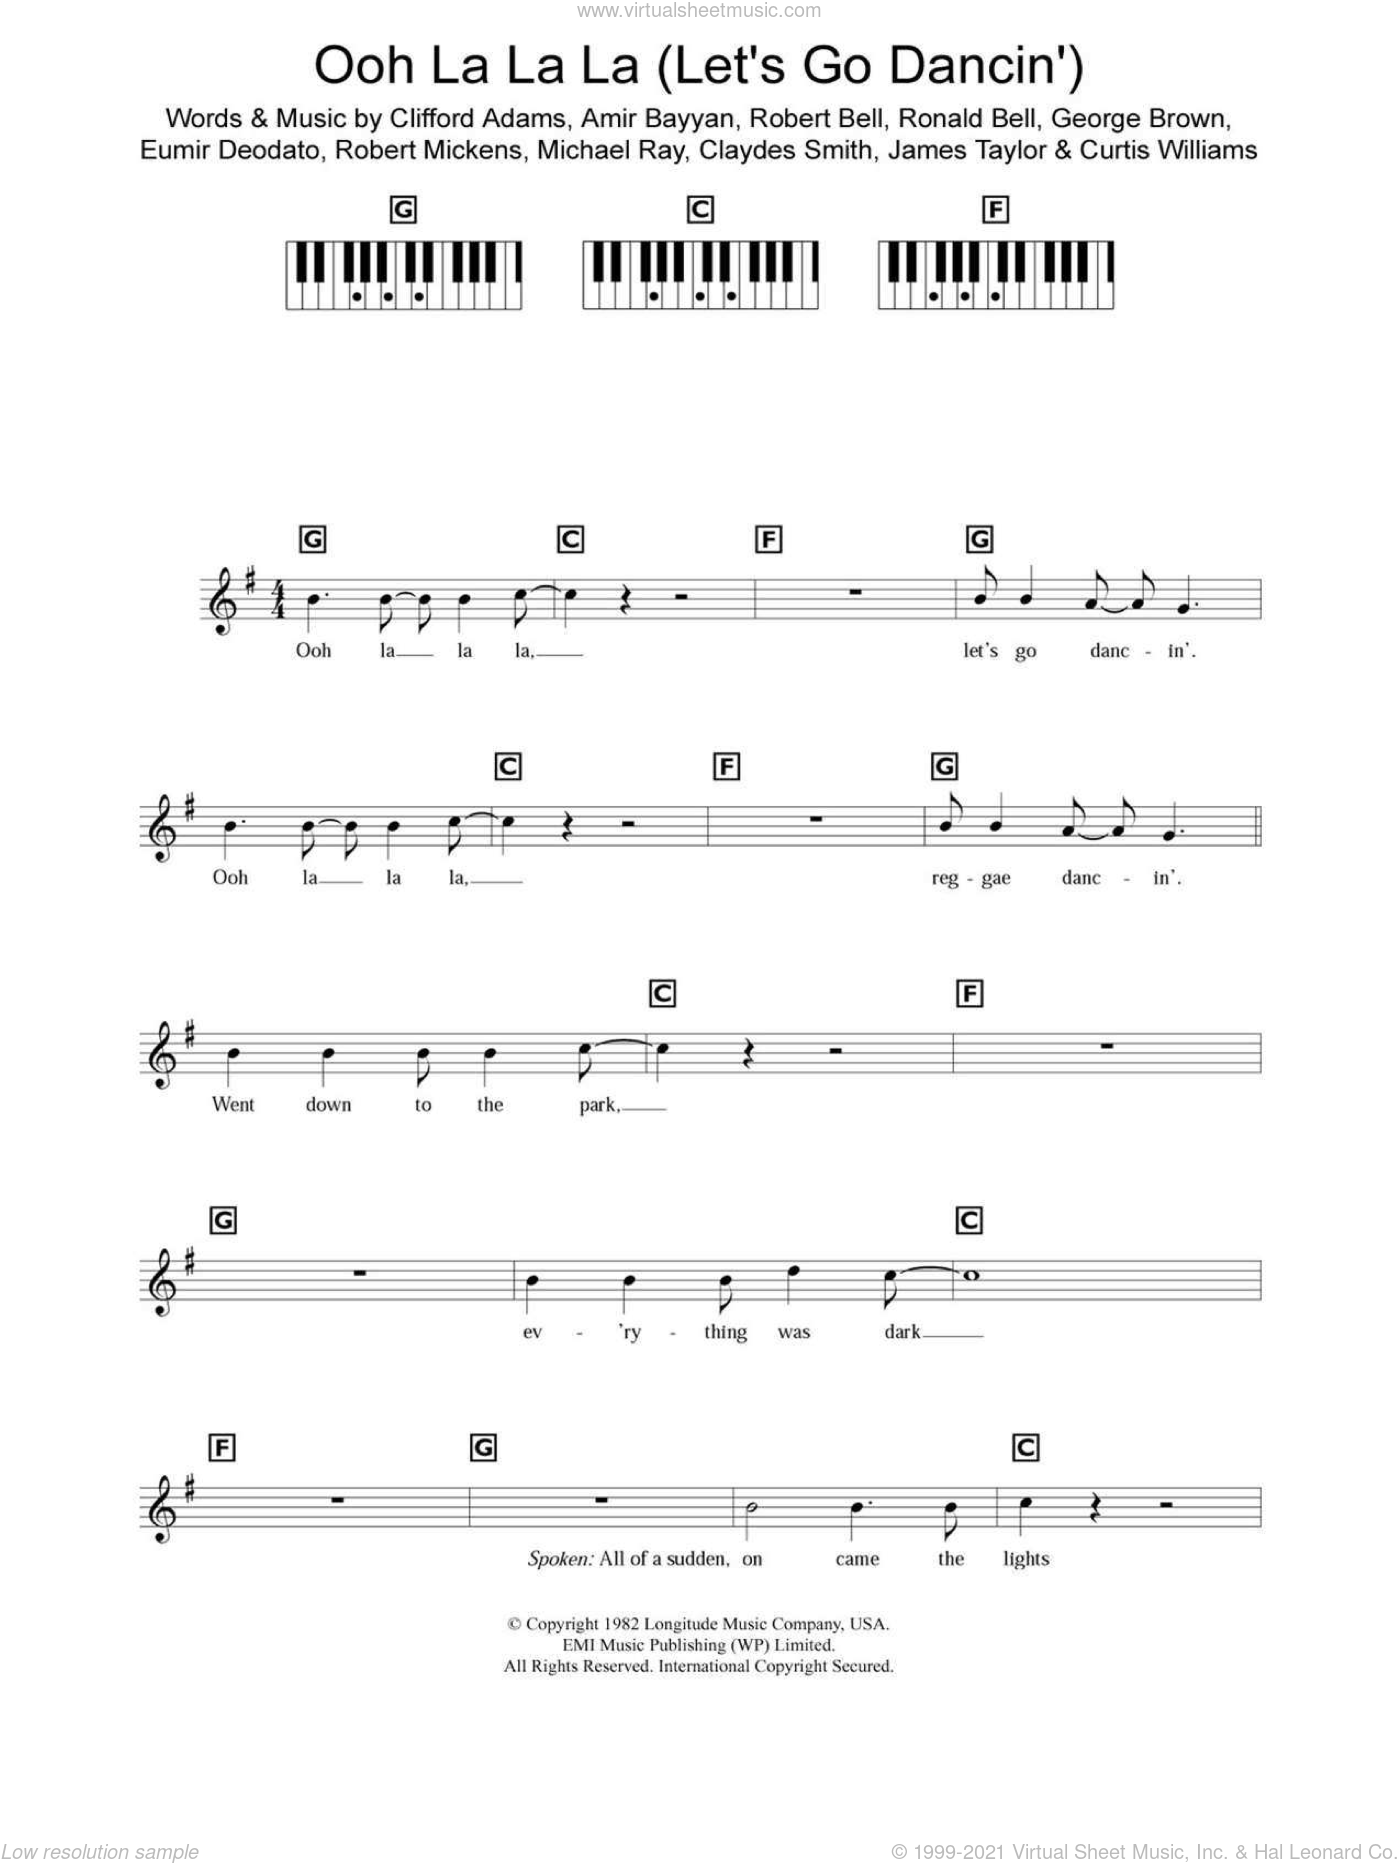 Ooh La La La (Let's Go Dancin') sheet music for piano solo (chords, lyrics, melody) by Ronald Bell